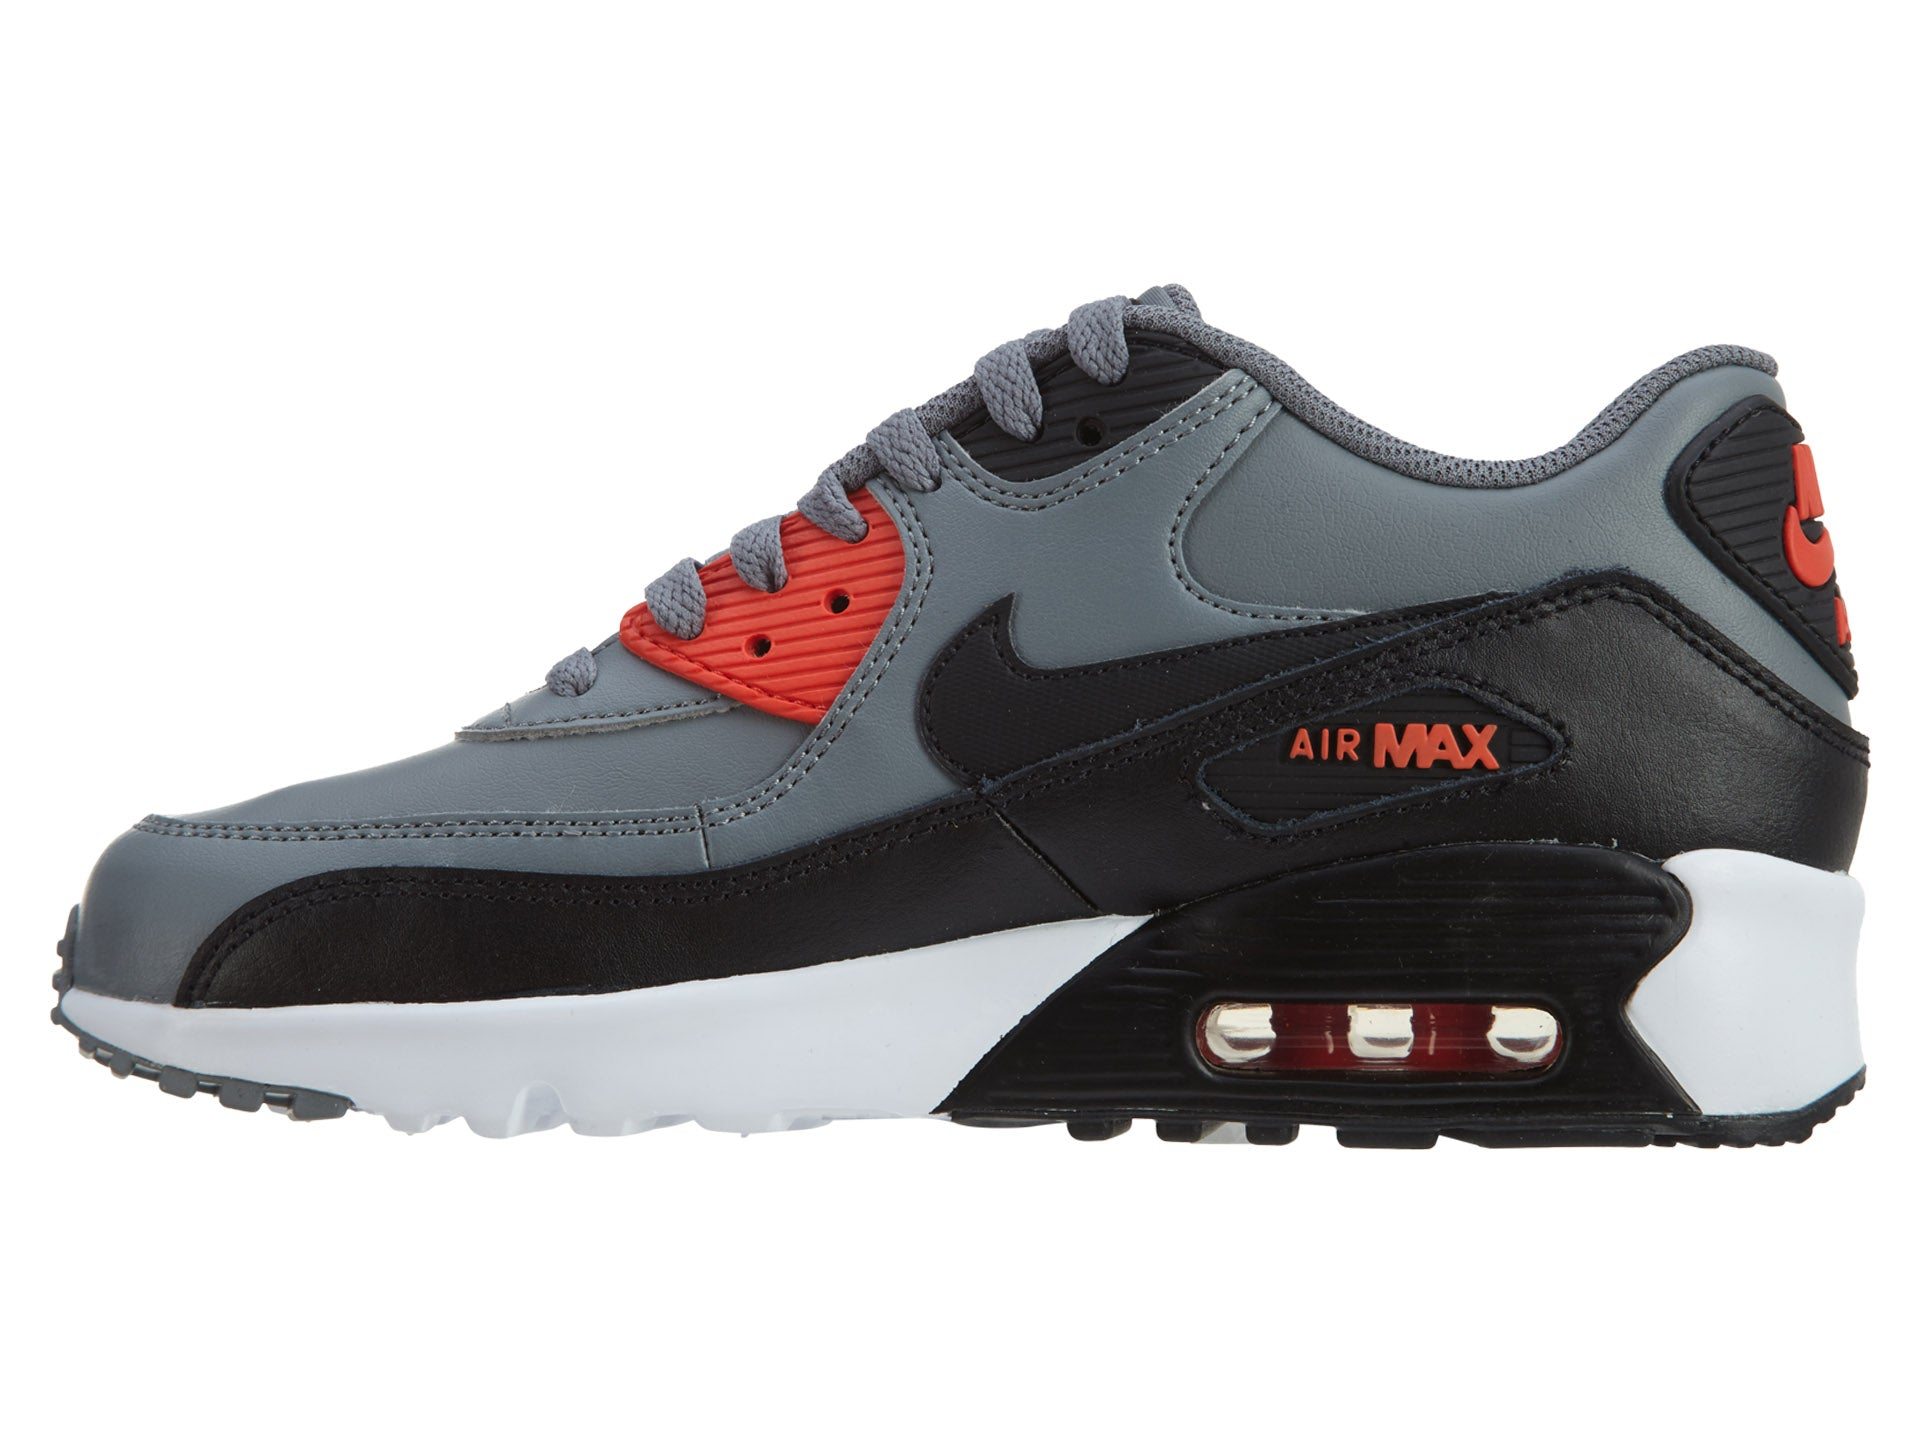 brand new 756cd 3ddf3 Nike Air Max 90 Ltr (Gs) Big Kids Style   833412 – TheEagleShoes